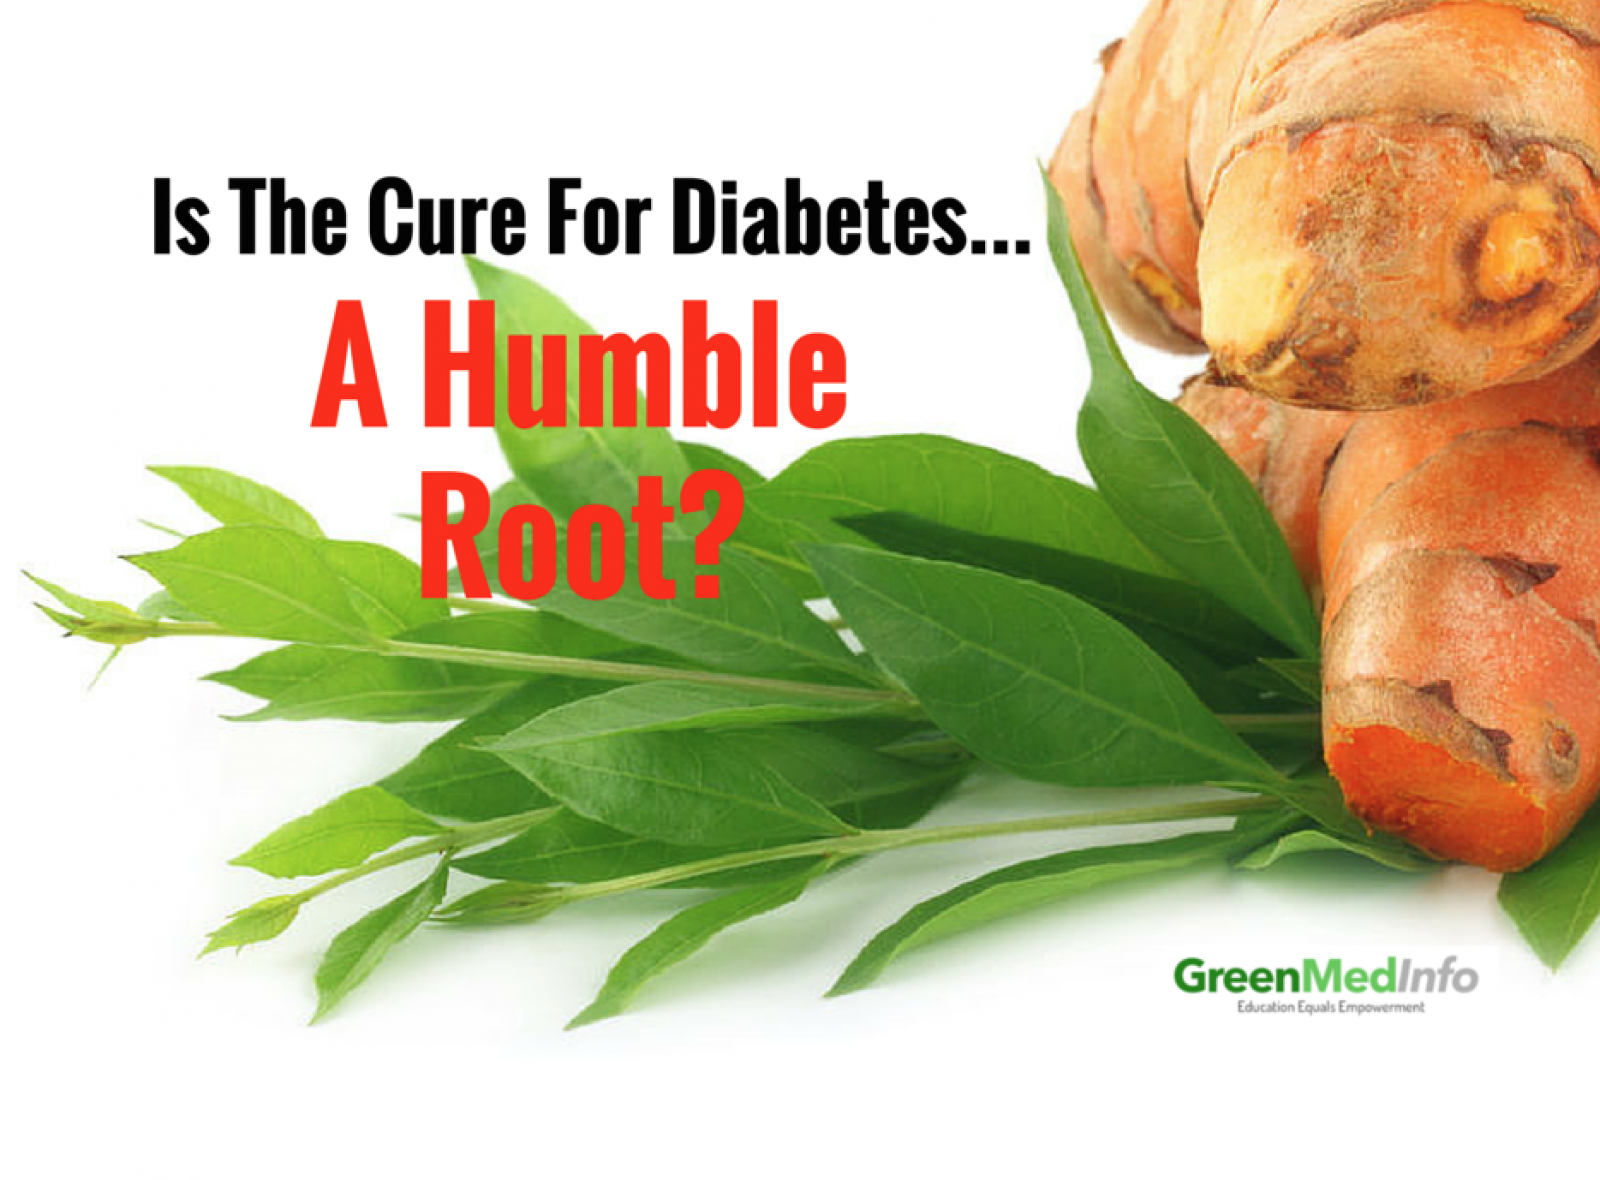 Is The Cure for Diabetes A Humble Root?